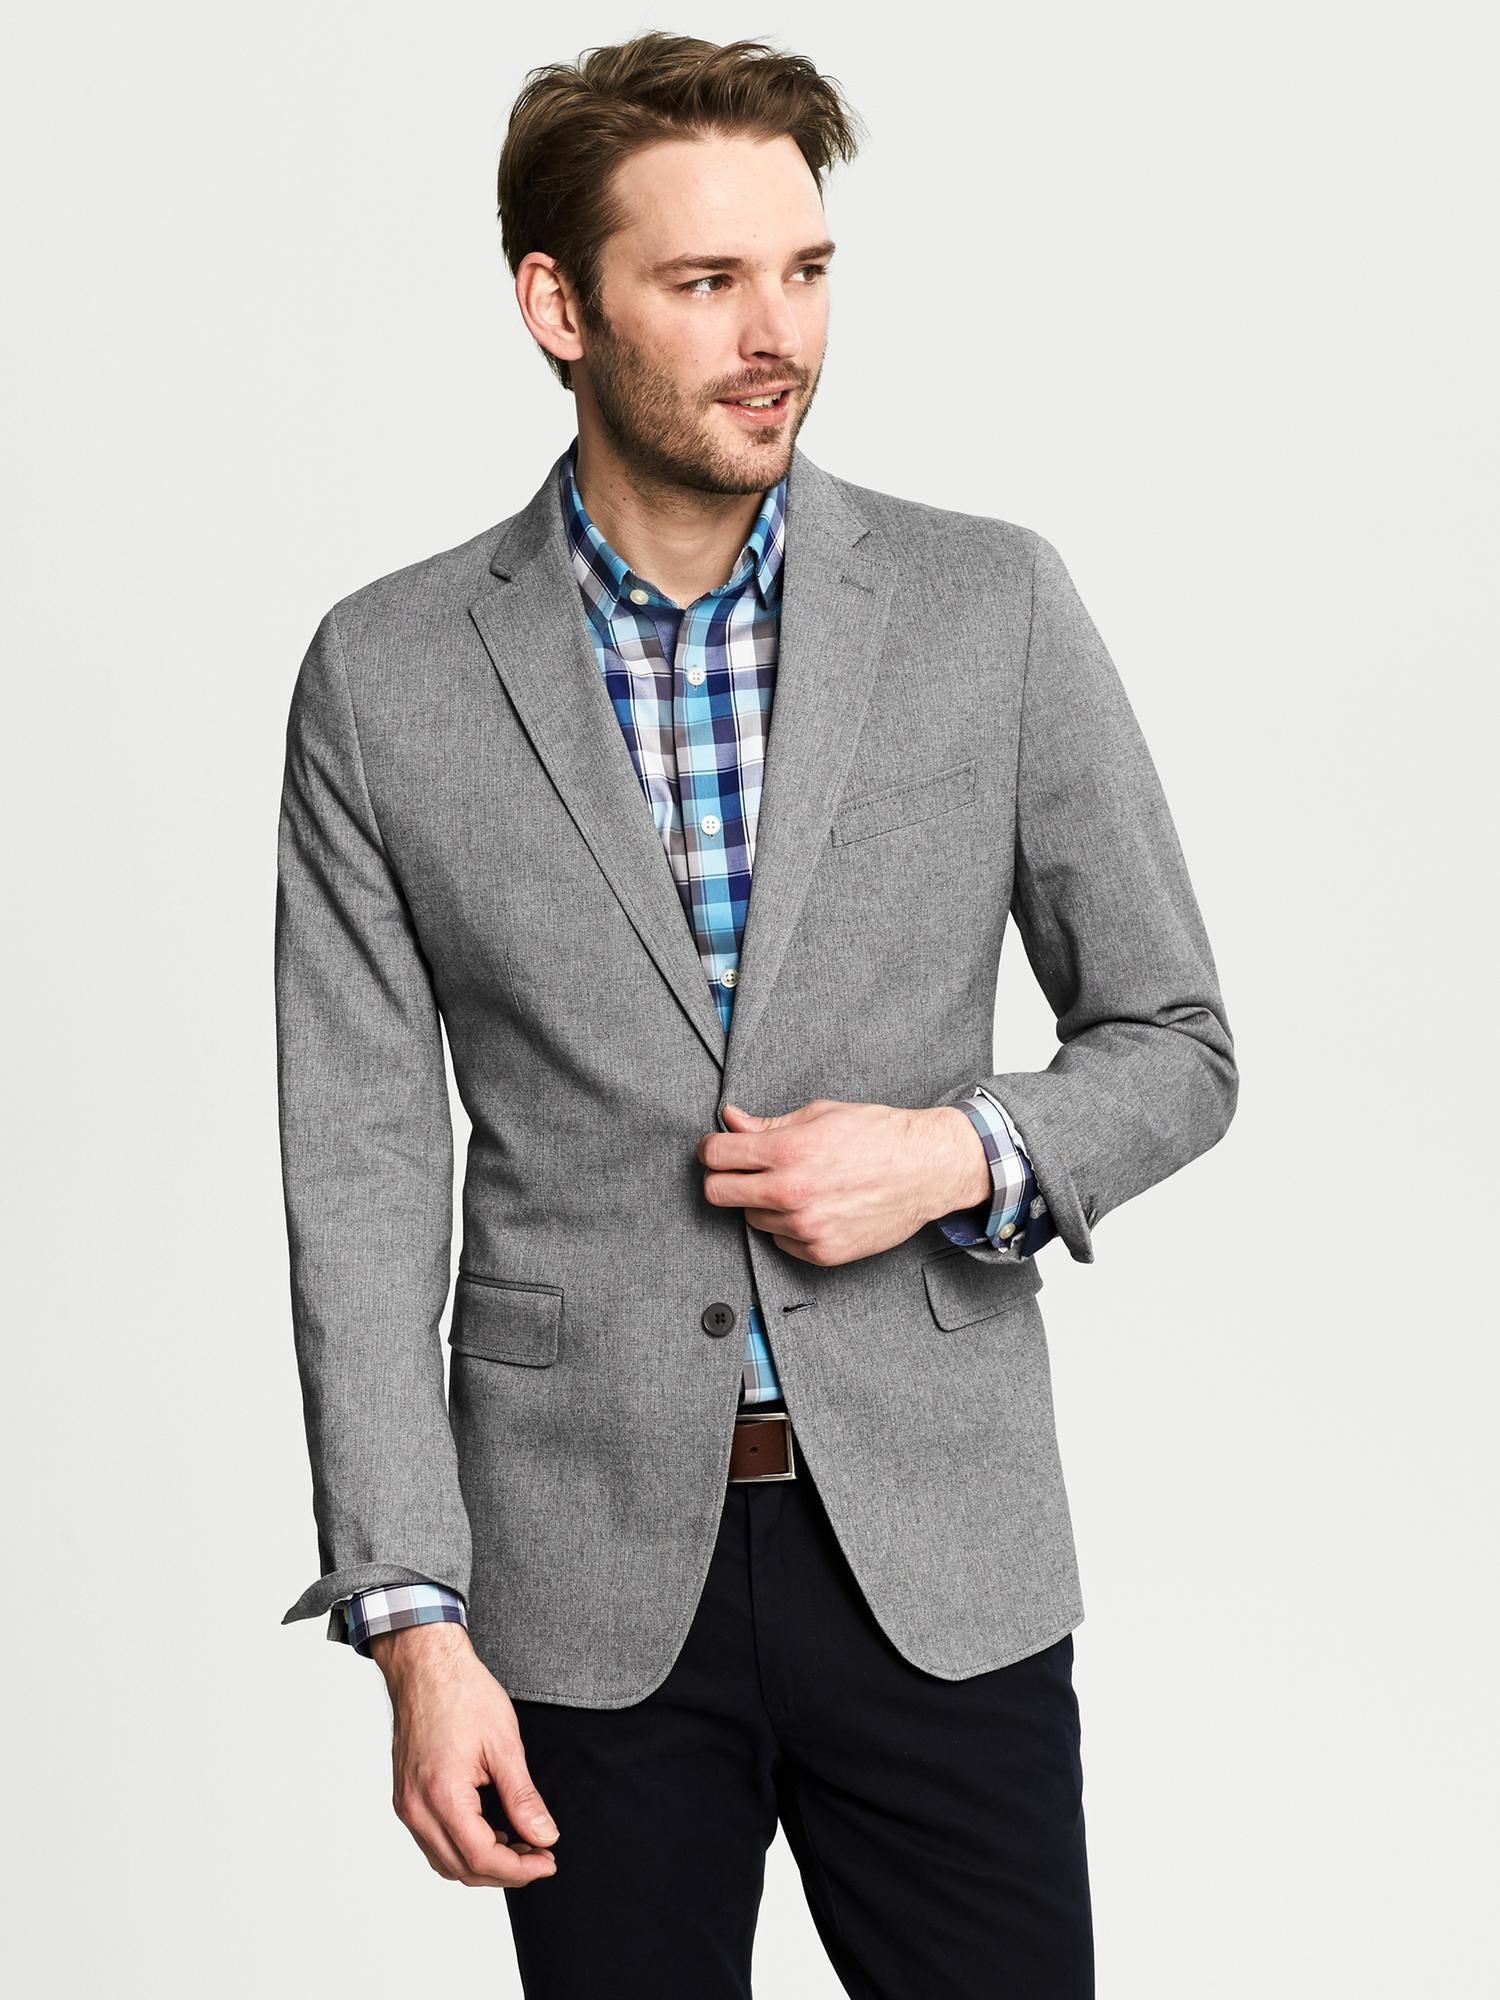 Mens Grey Blazer Photo Album - Reikian